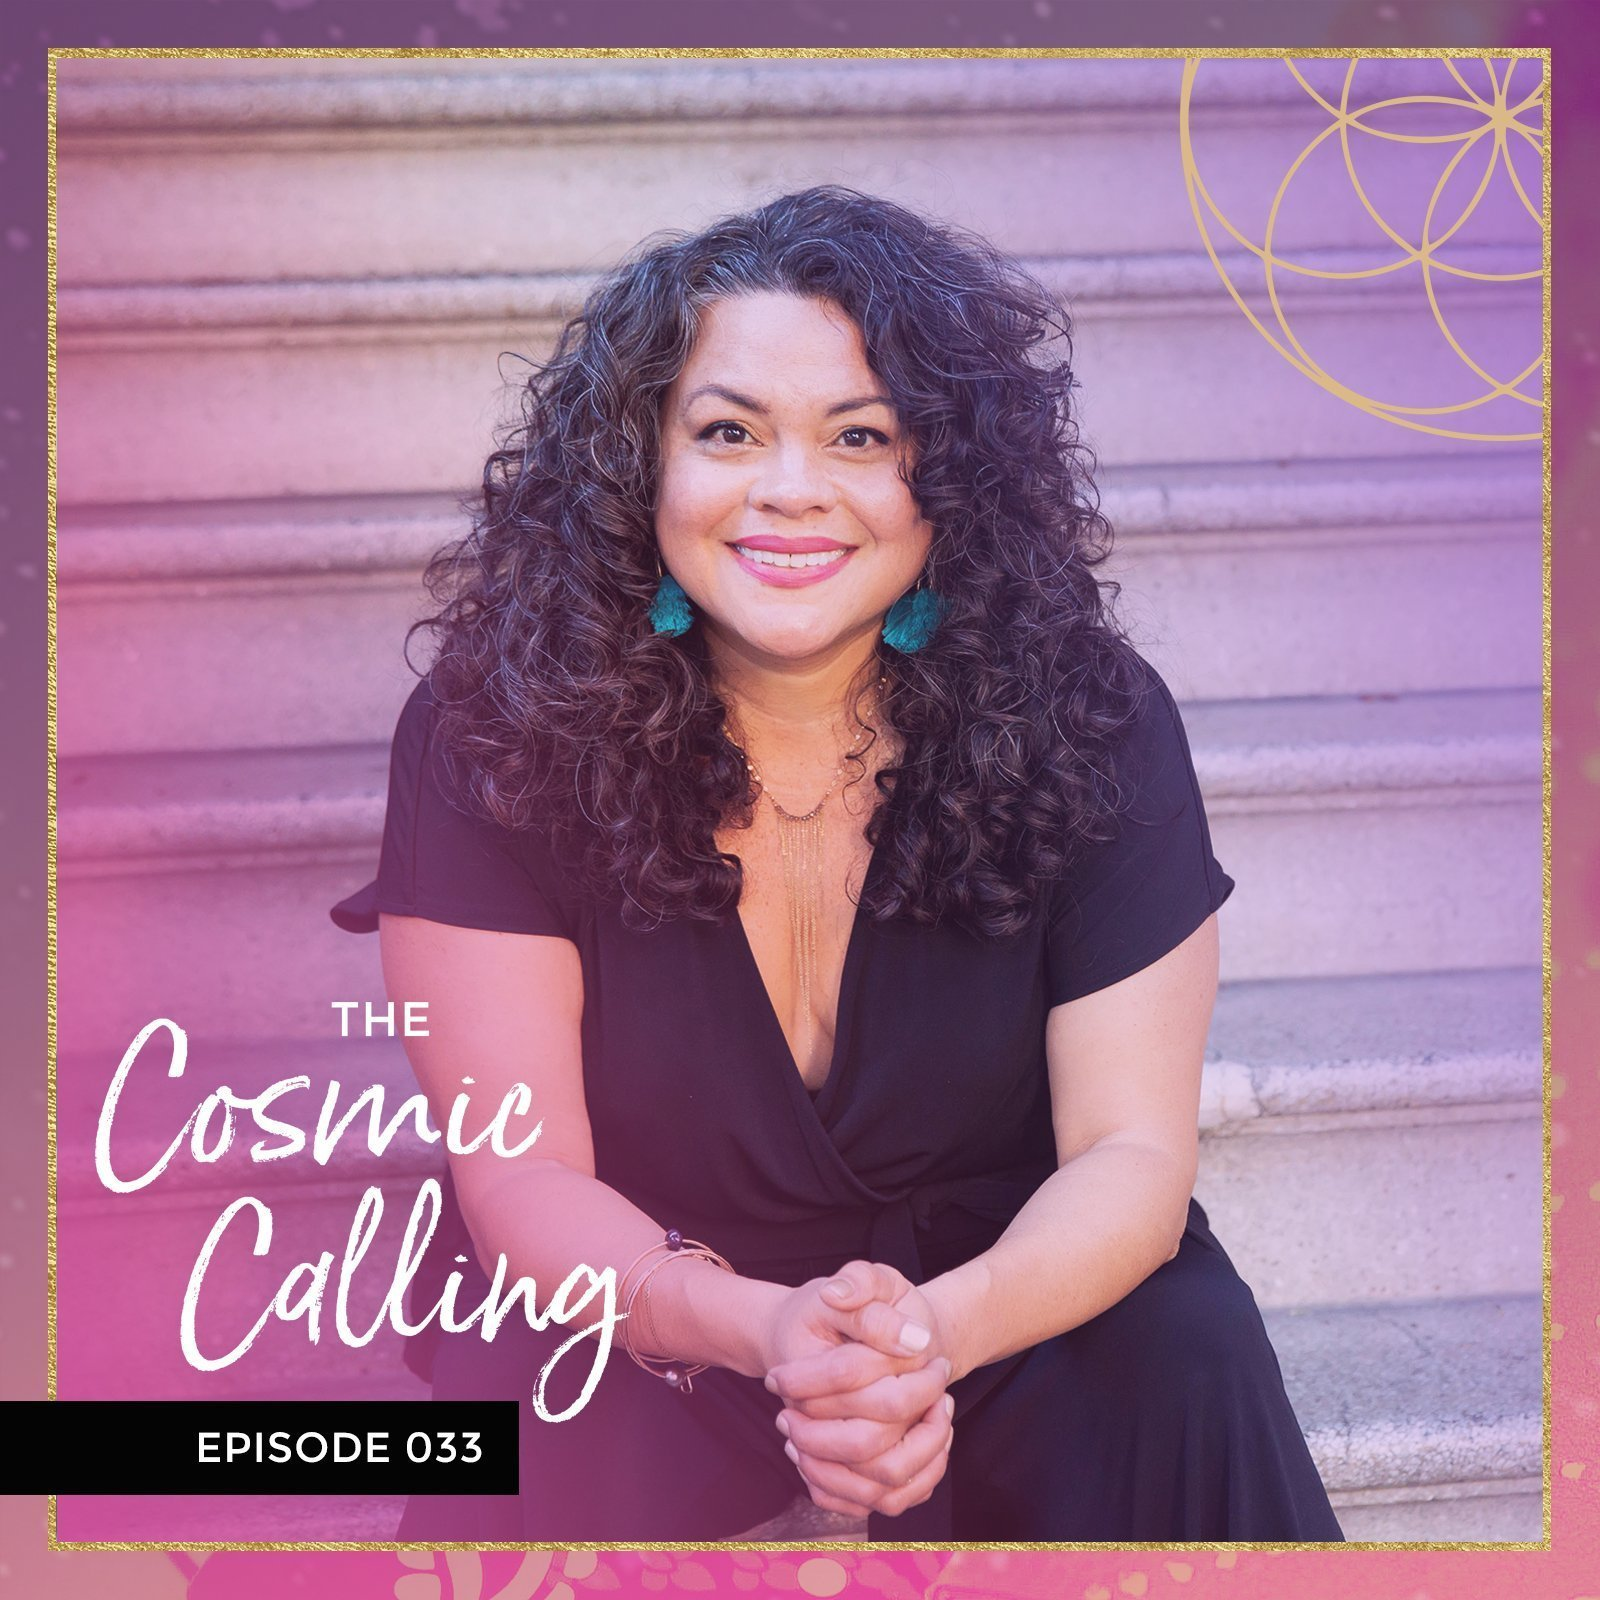 The Cosmic Calling: Episode 033 | Brand Astrology with Leslie Tagorda